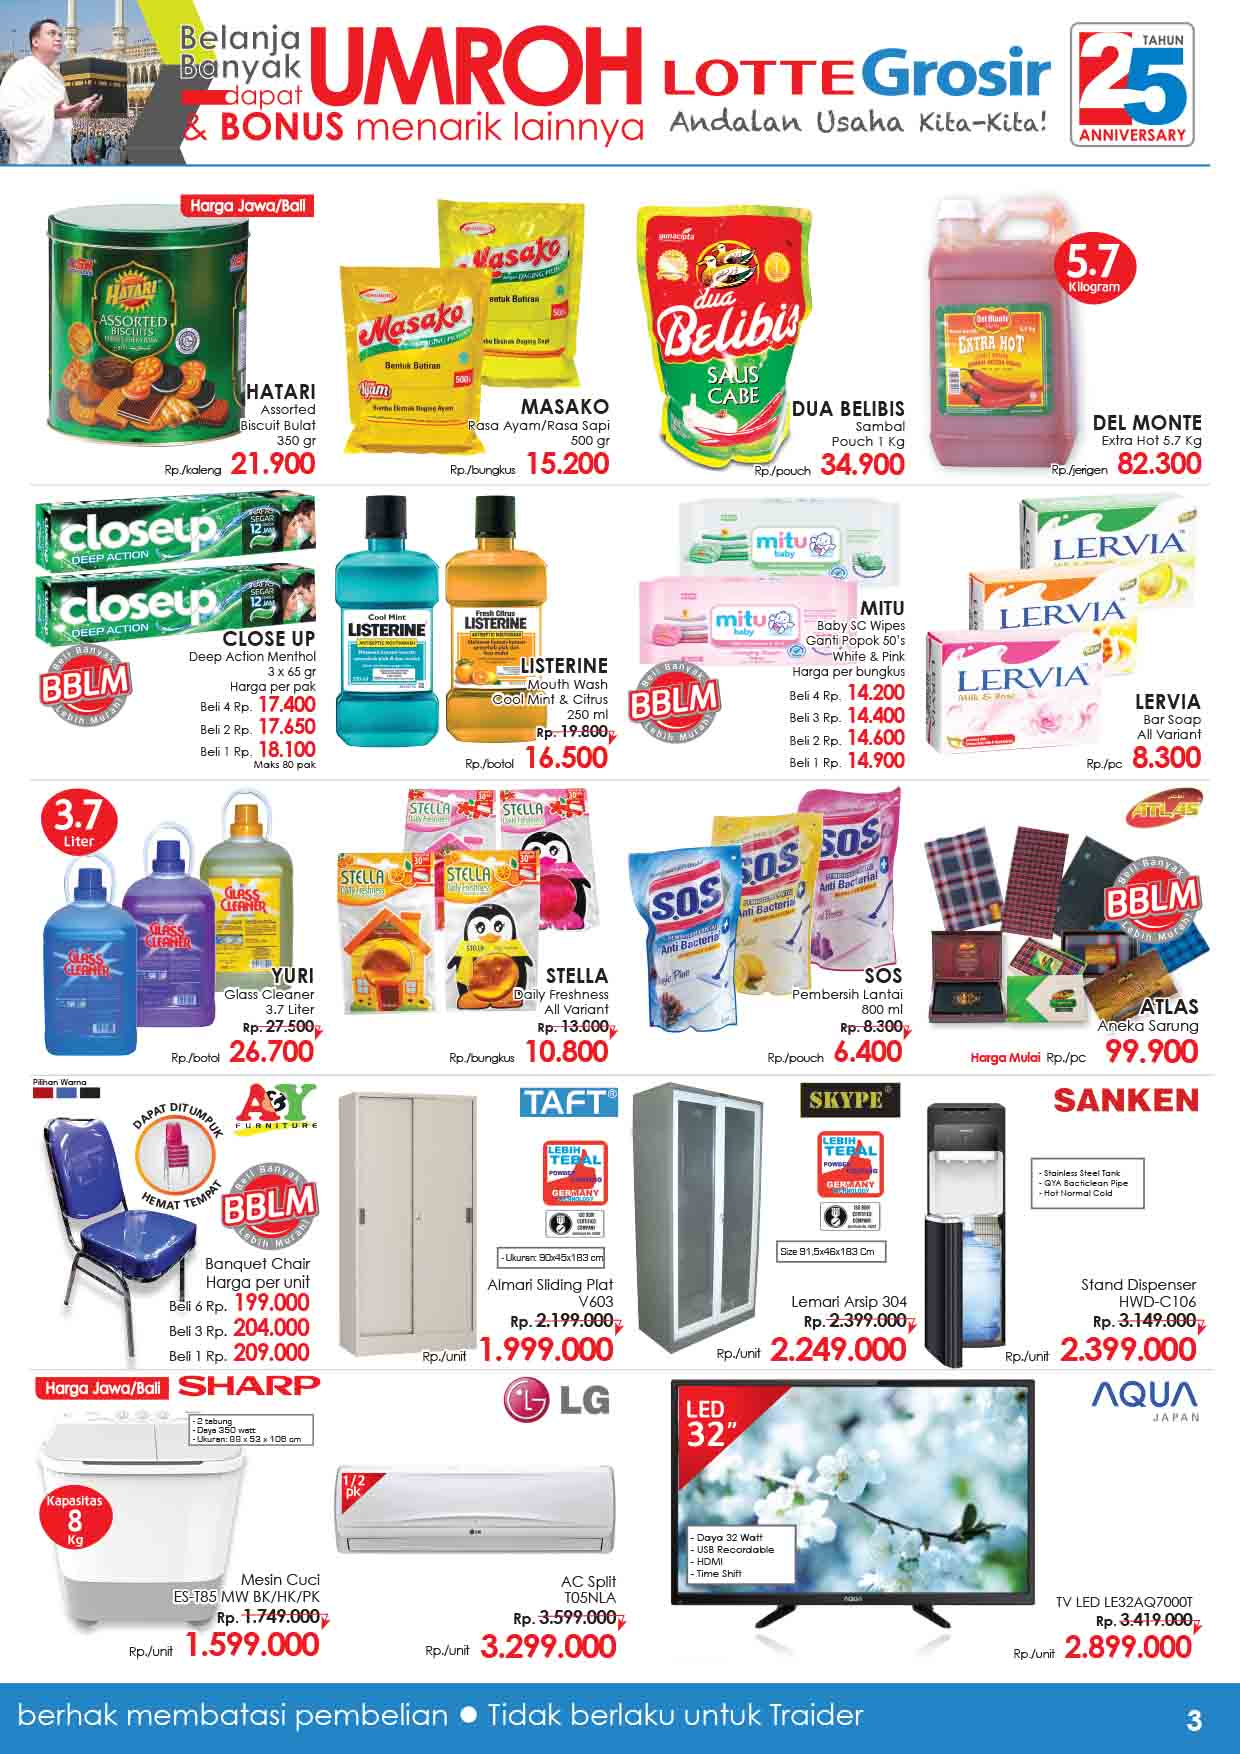 Voucher Superindo Rp 200000 Daftar Harga Terlengkap Indonesia Terkini 300000 Home Page 5 Type To Search Item In